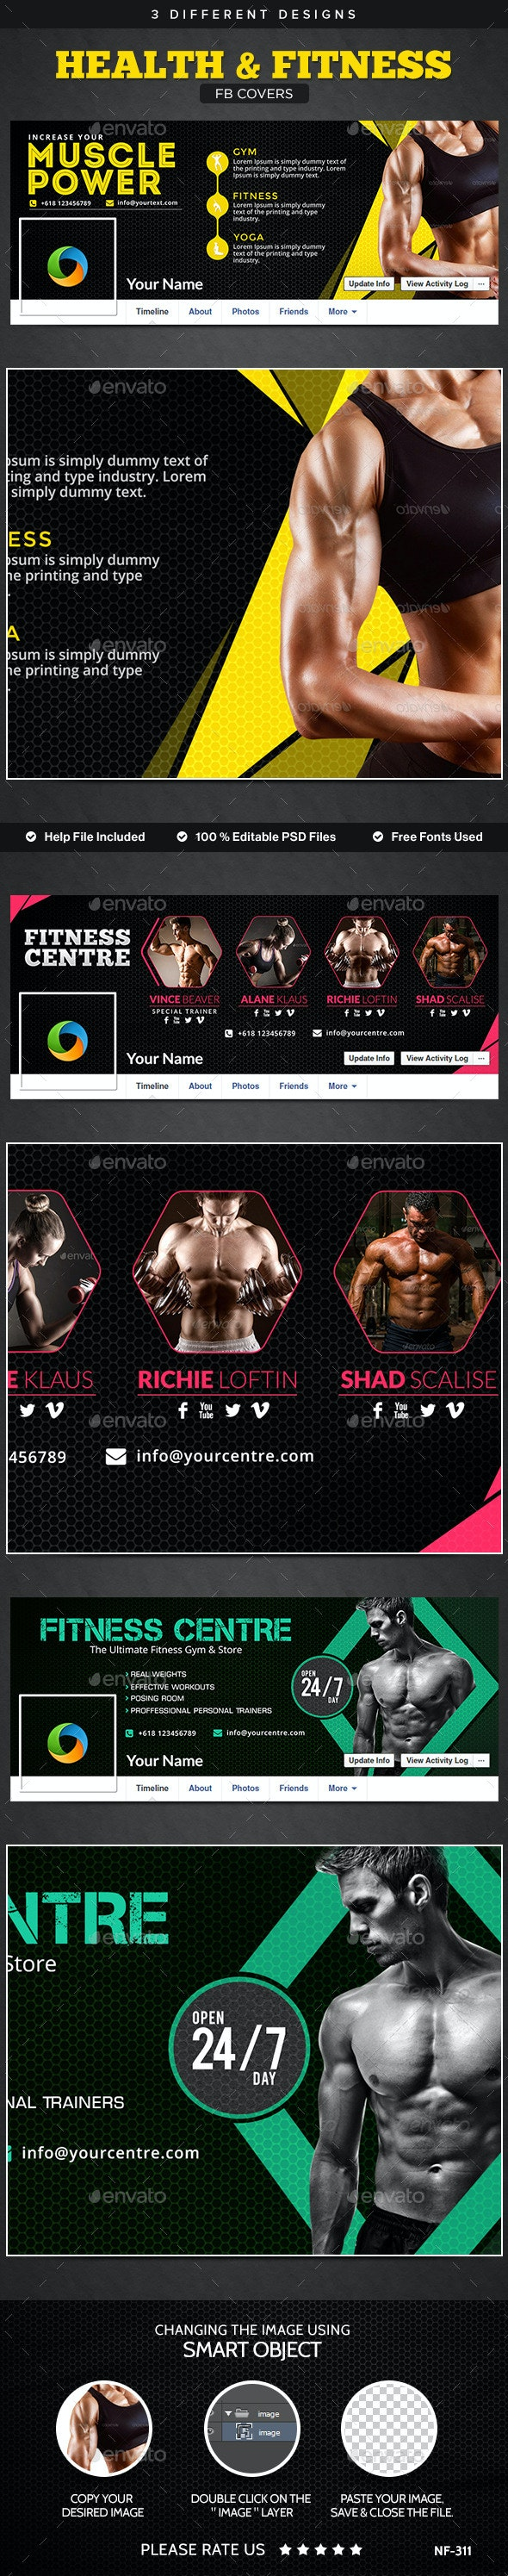 Health & Fitness Facebook Covers - 3 Designs - Facebook Timeline Covers Social Media